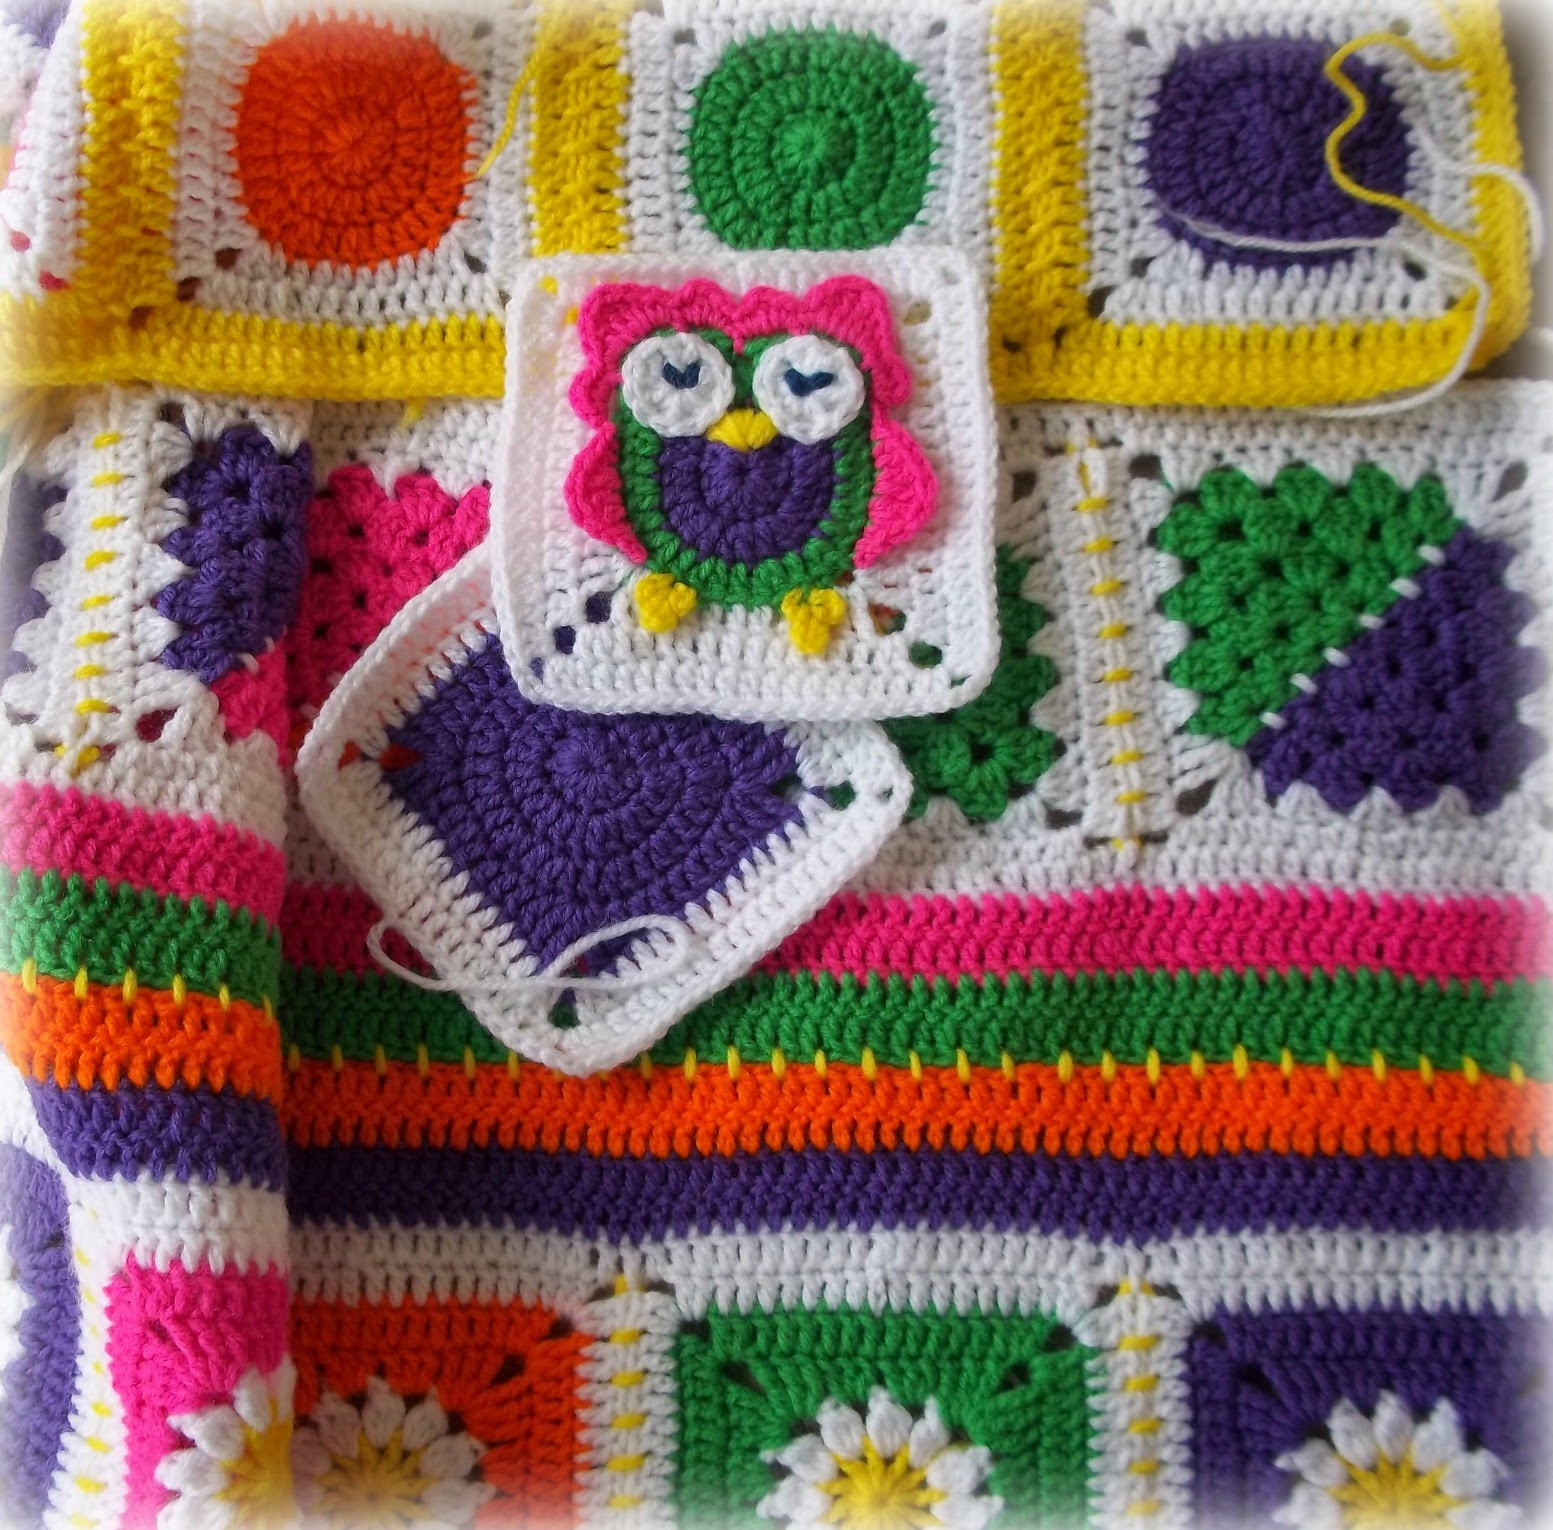 Crochet Owl Blanket Beautiful Zooty Owl S Crafty Blog Zooty Owl Square Baby Groovyghan Of Contemporary 43 Images Crochet Owl Blanket